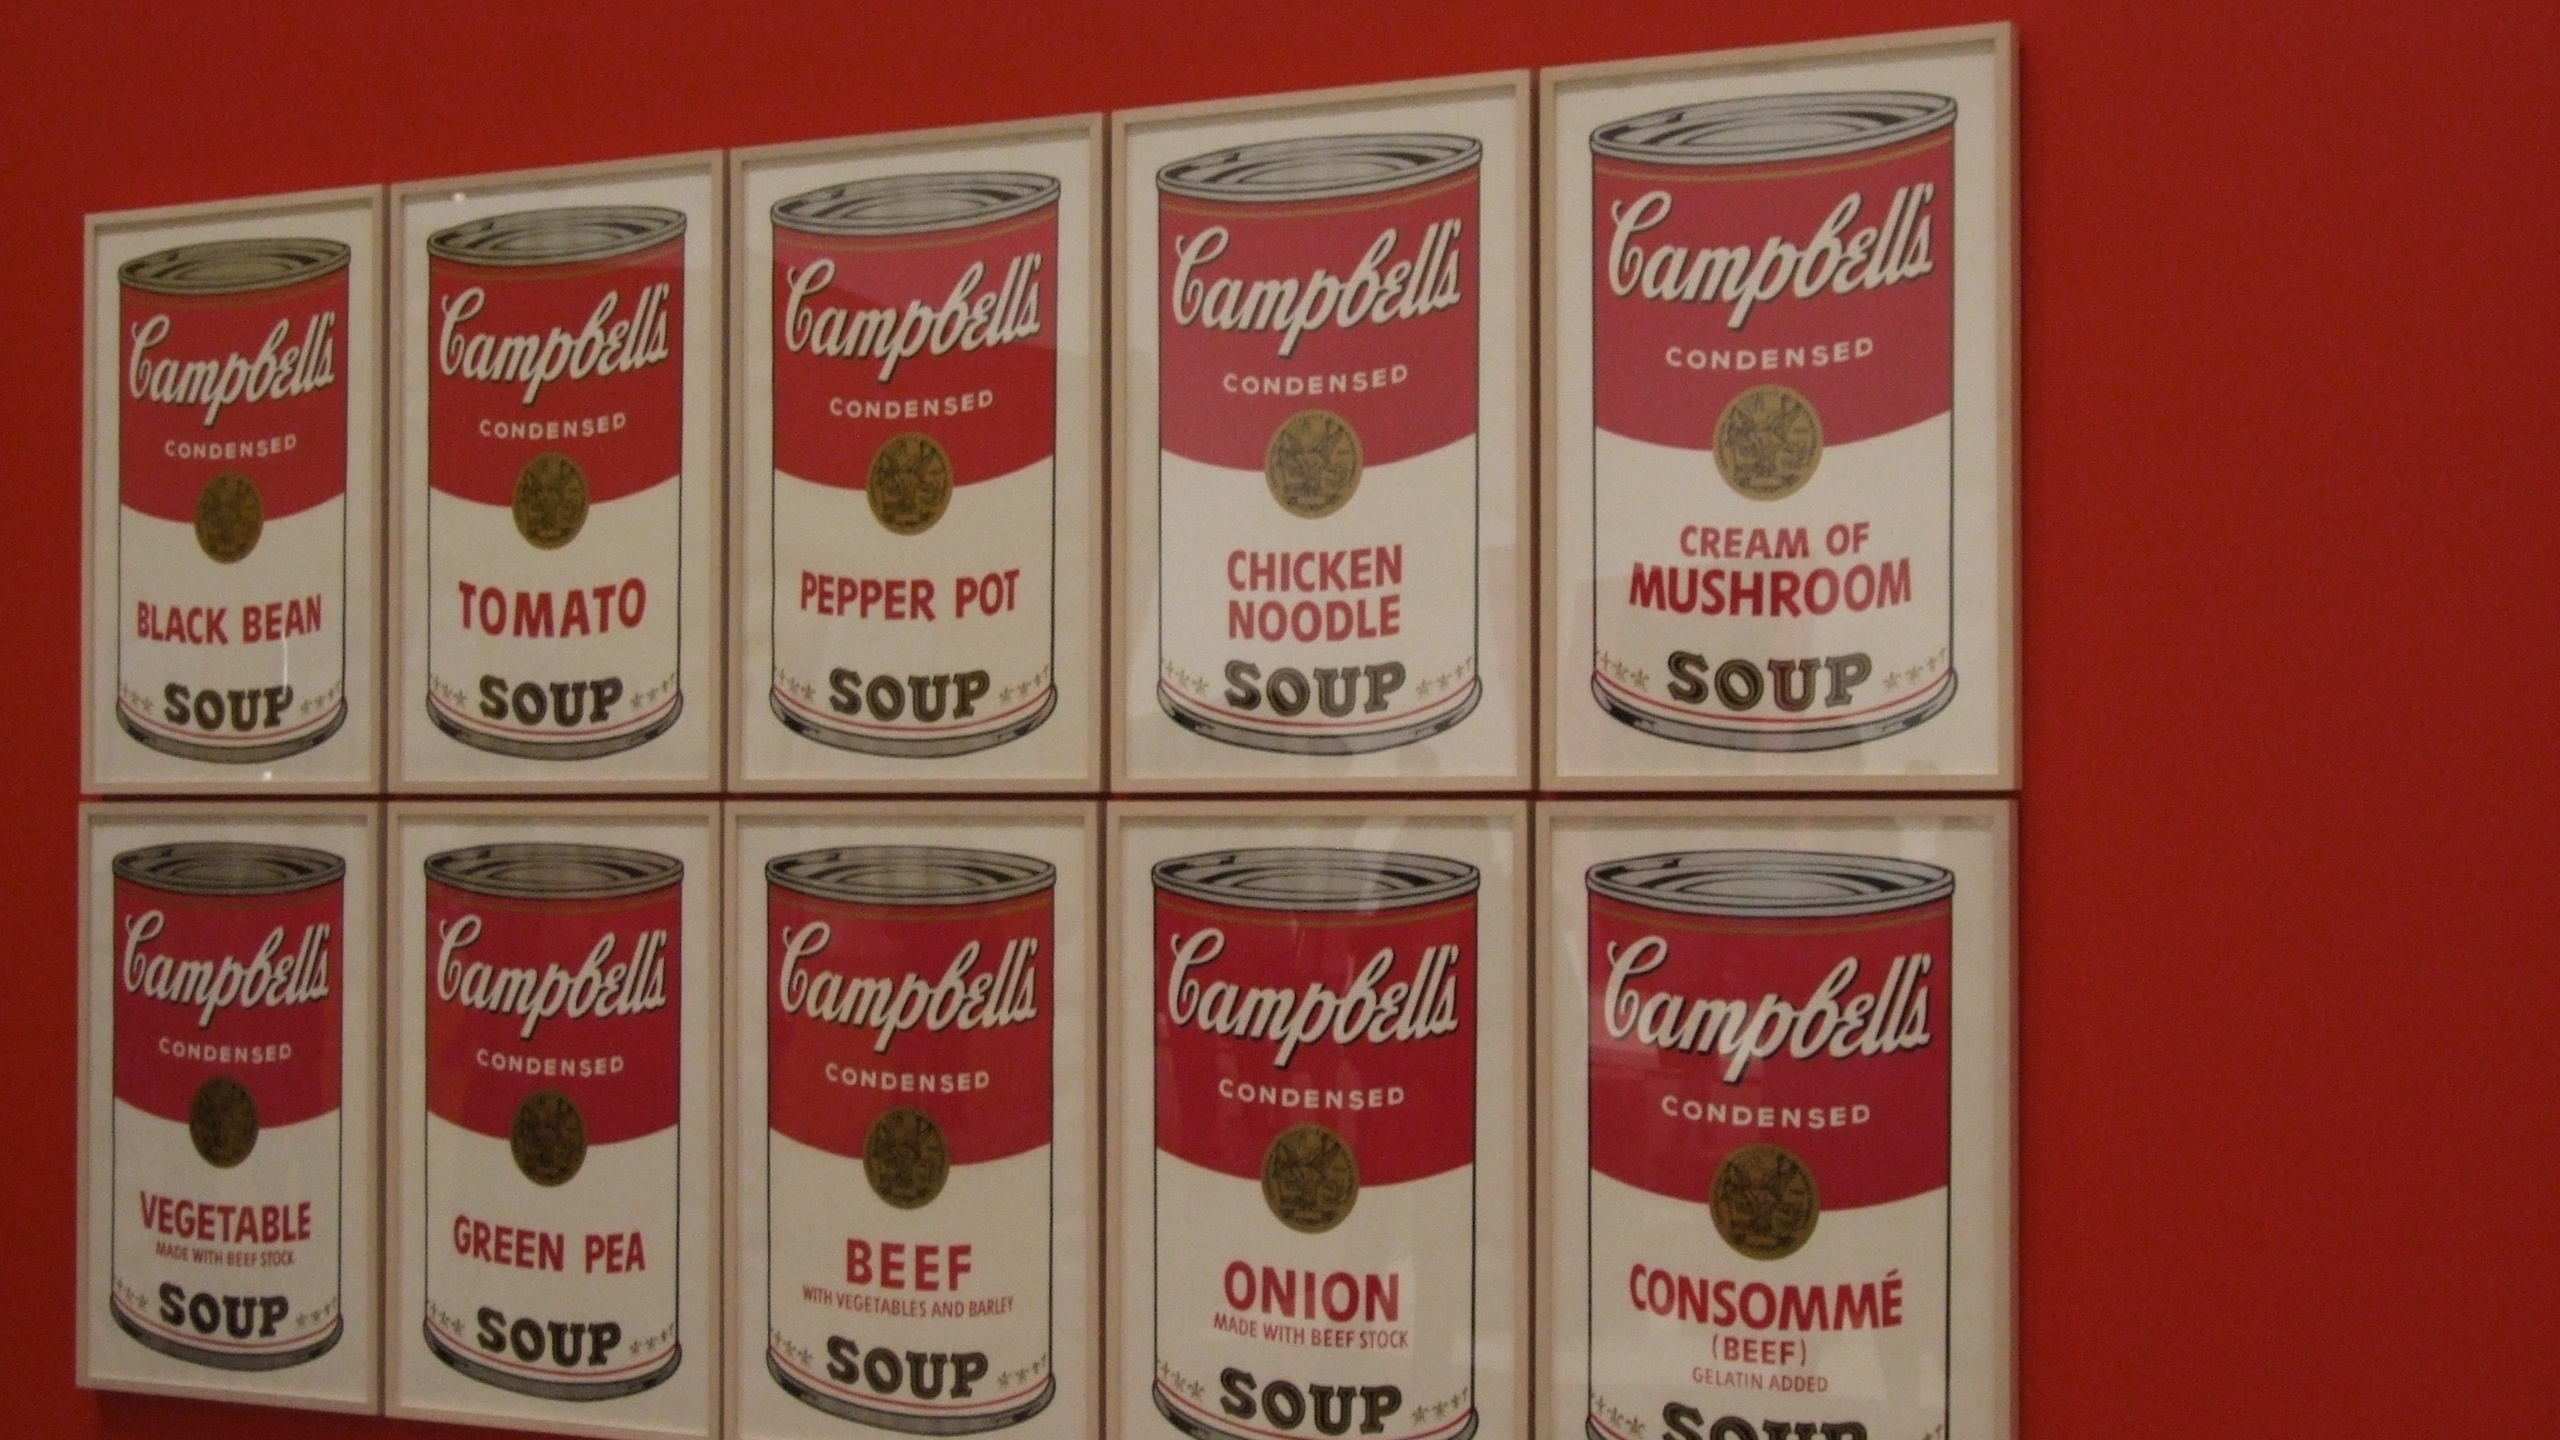 2560x1440 American Artist, Andy Warhol Campbells Soup Poster, Arts